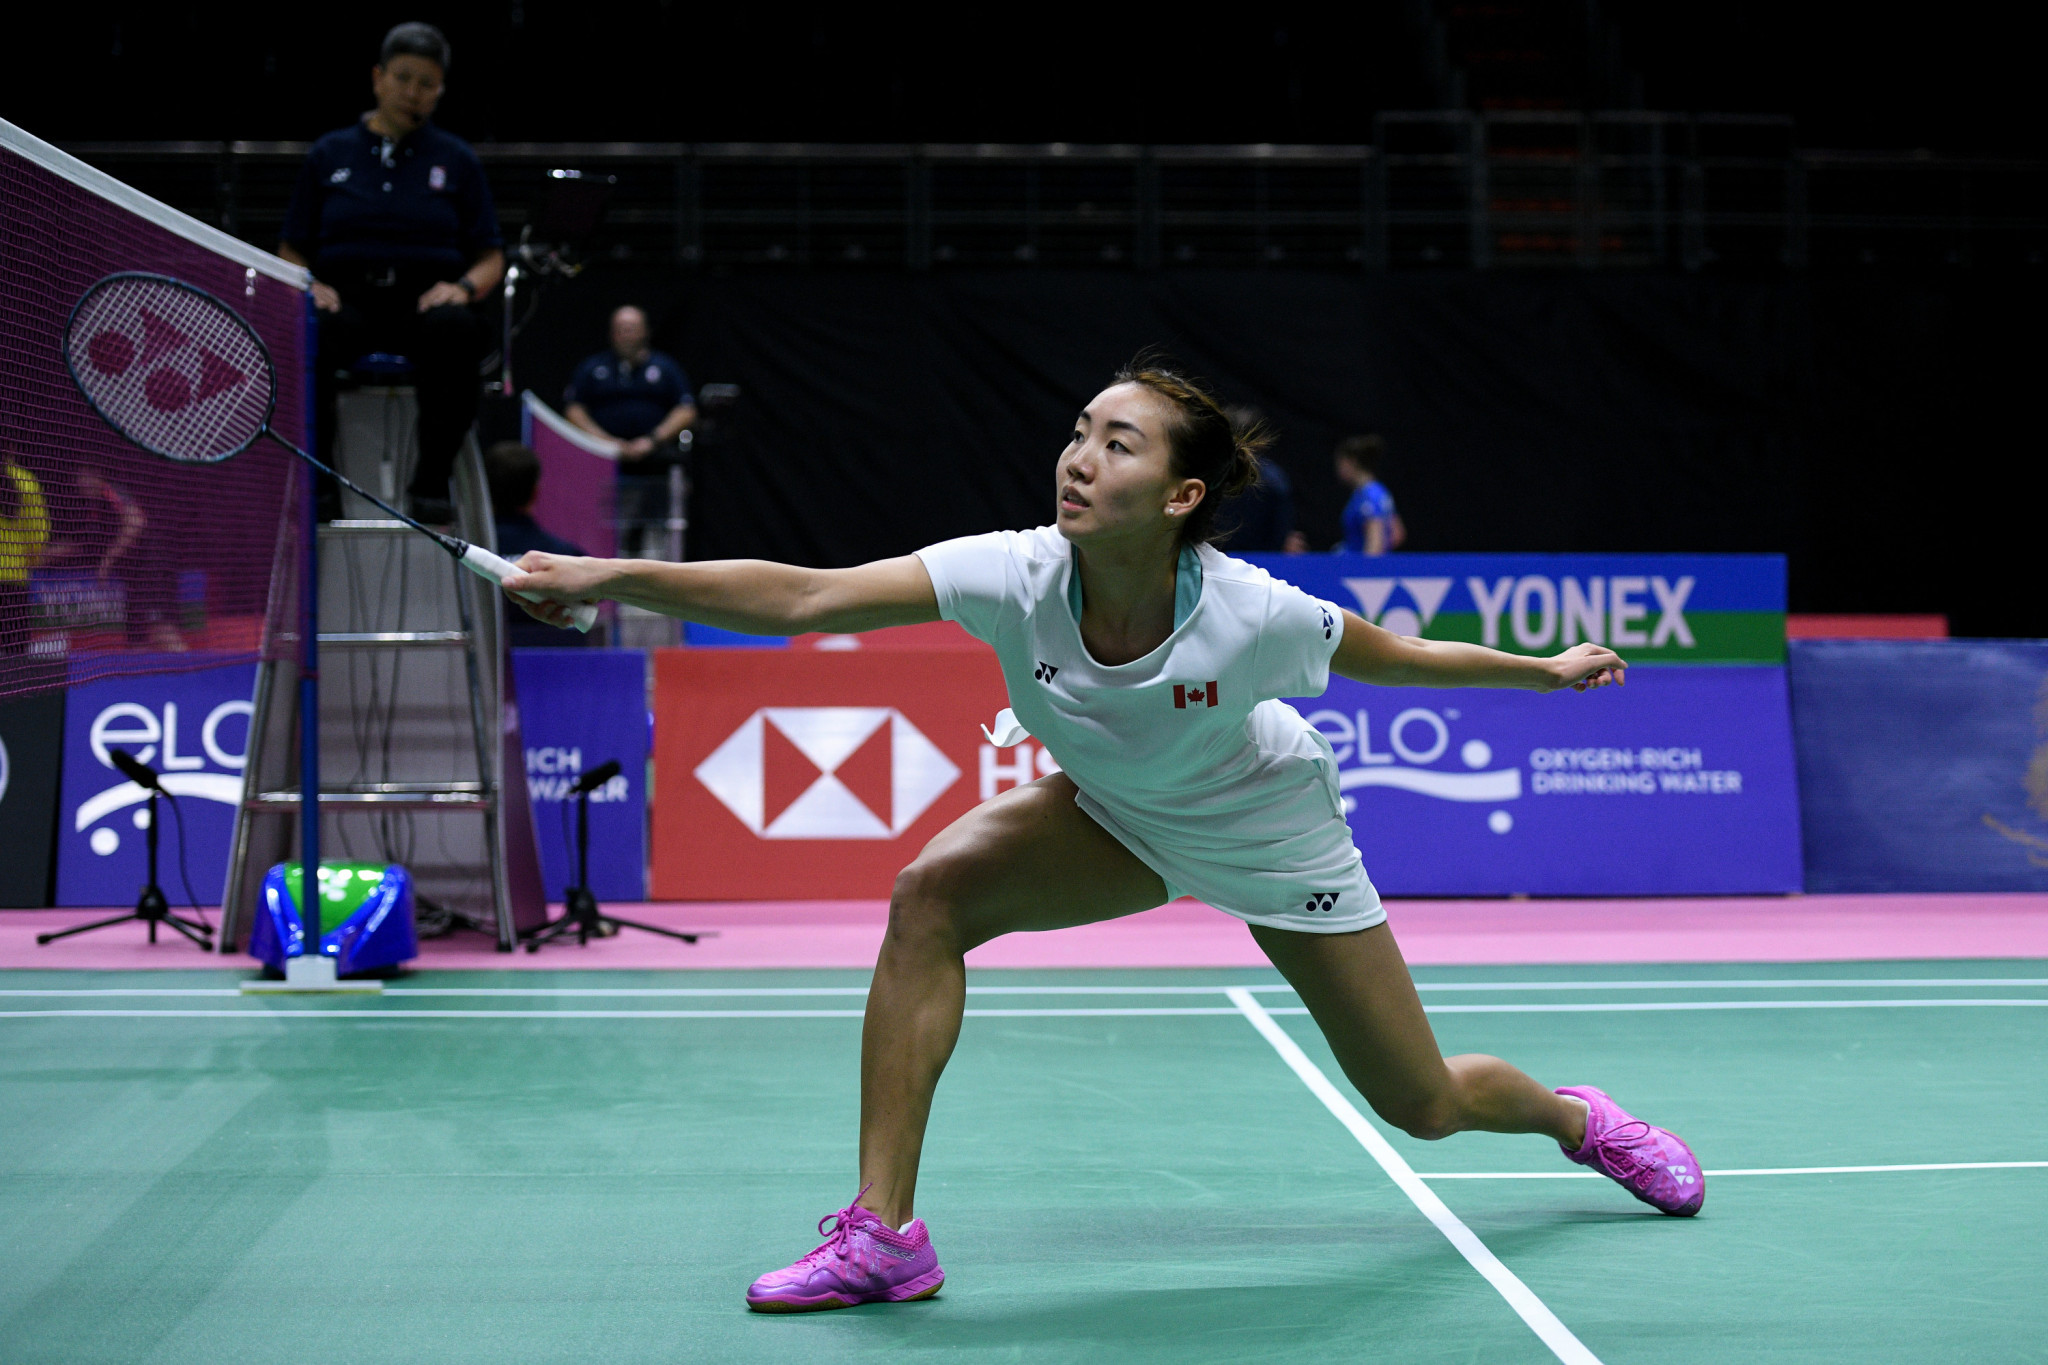 Home favourite Michelle Li is seeded first for this week's Badminton World Federation Canada Open in Calgary ©Getty Images